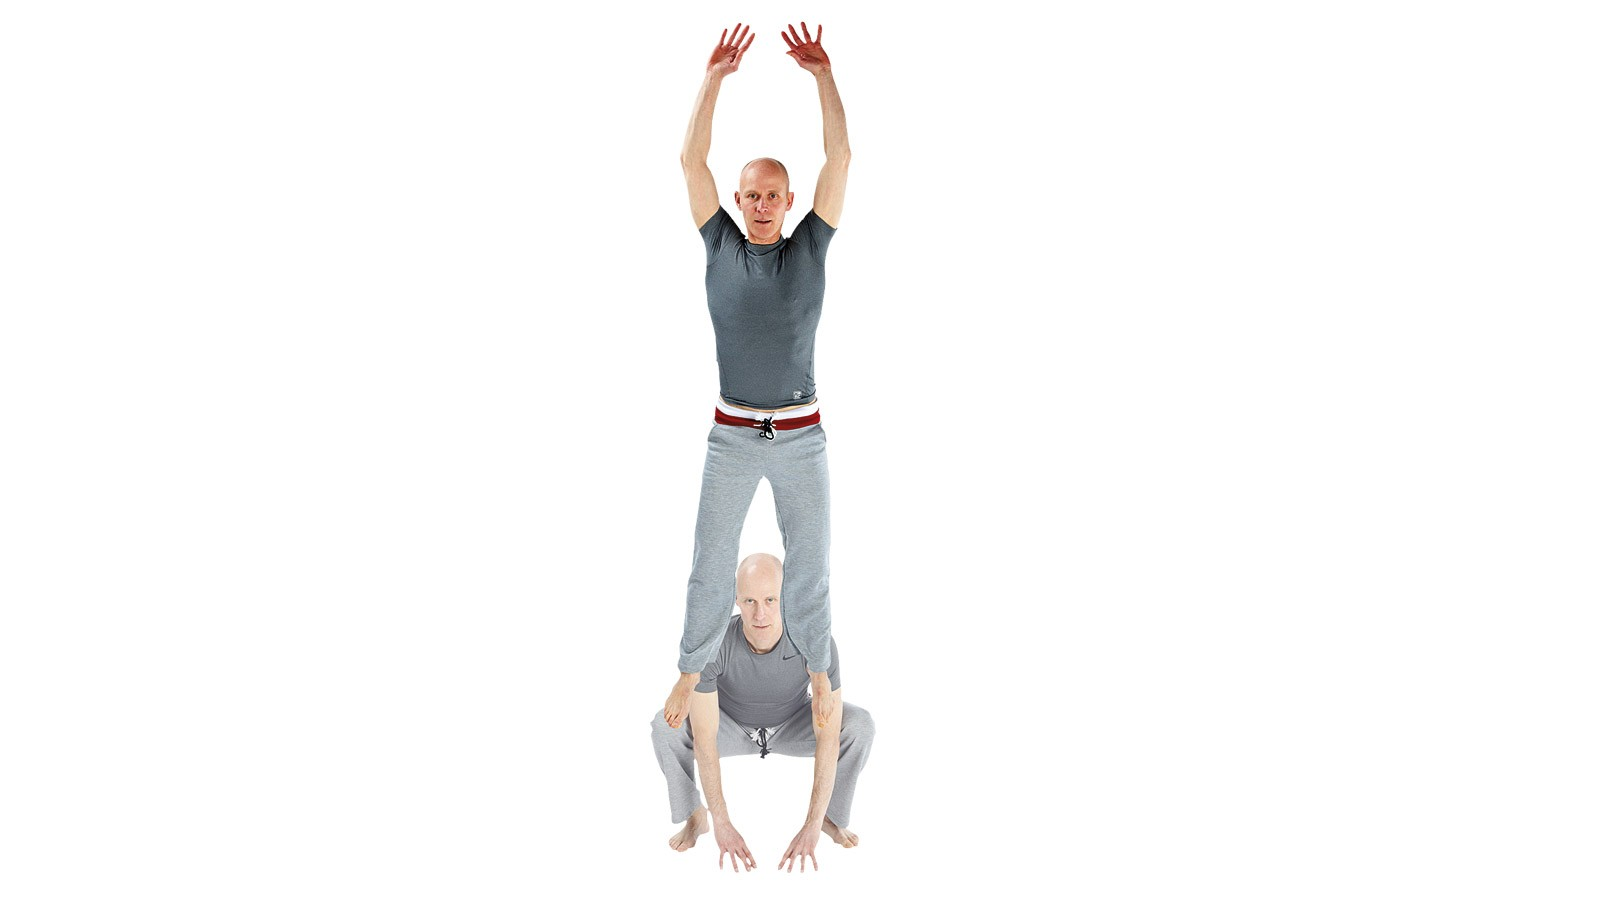 Jump squats are a dynamic exercise that develops fast twitch muscles in your legs. The deep landing variation shown here is also great for fat loss